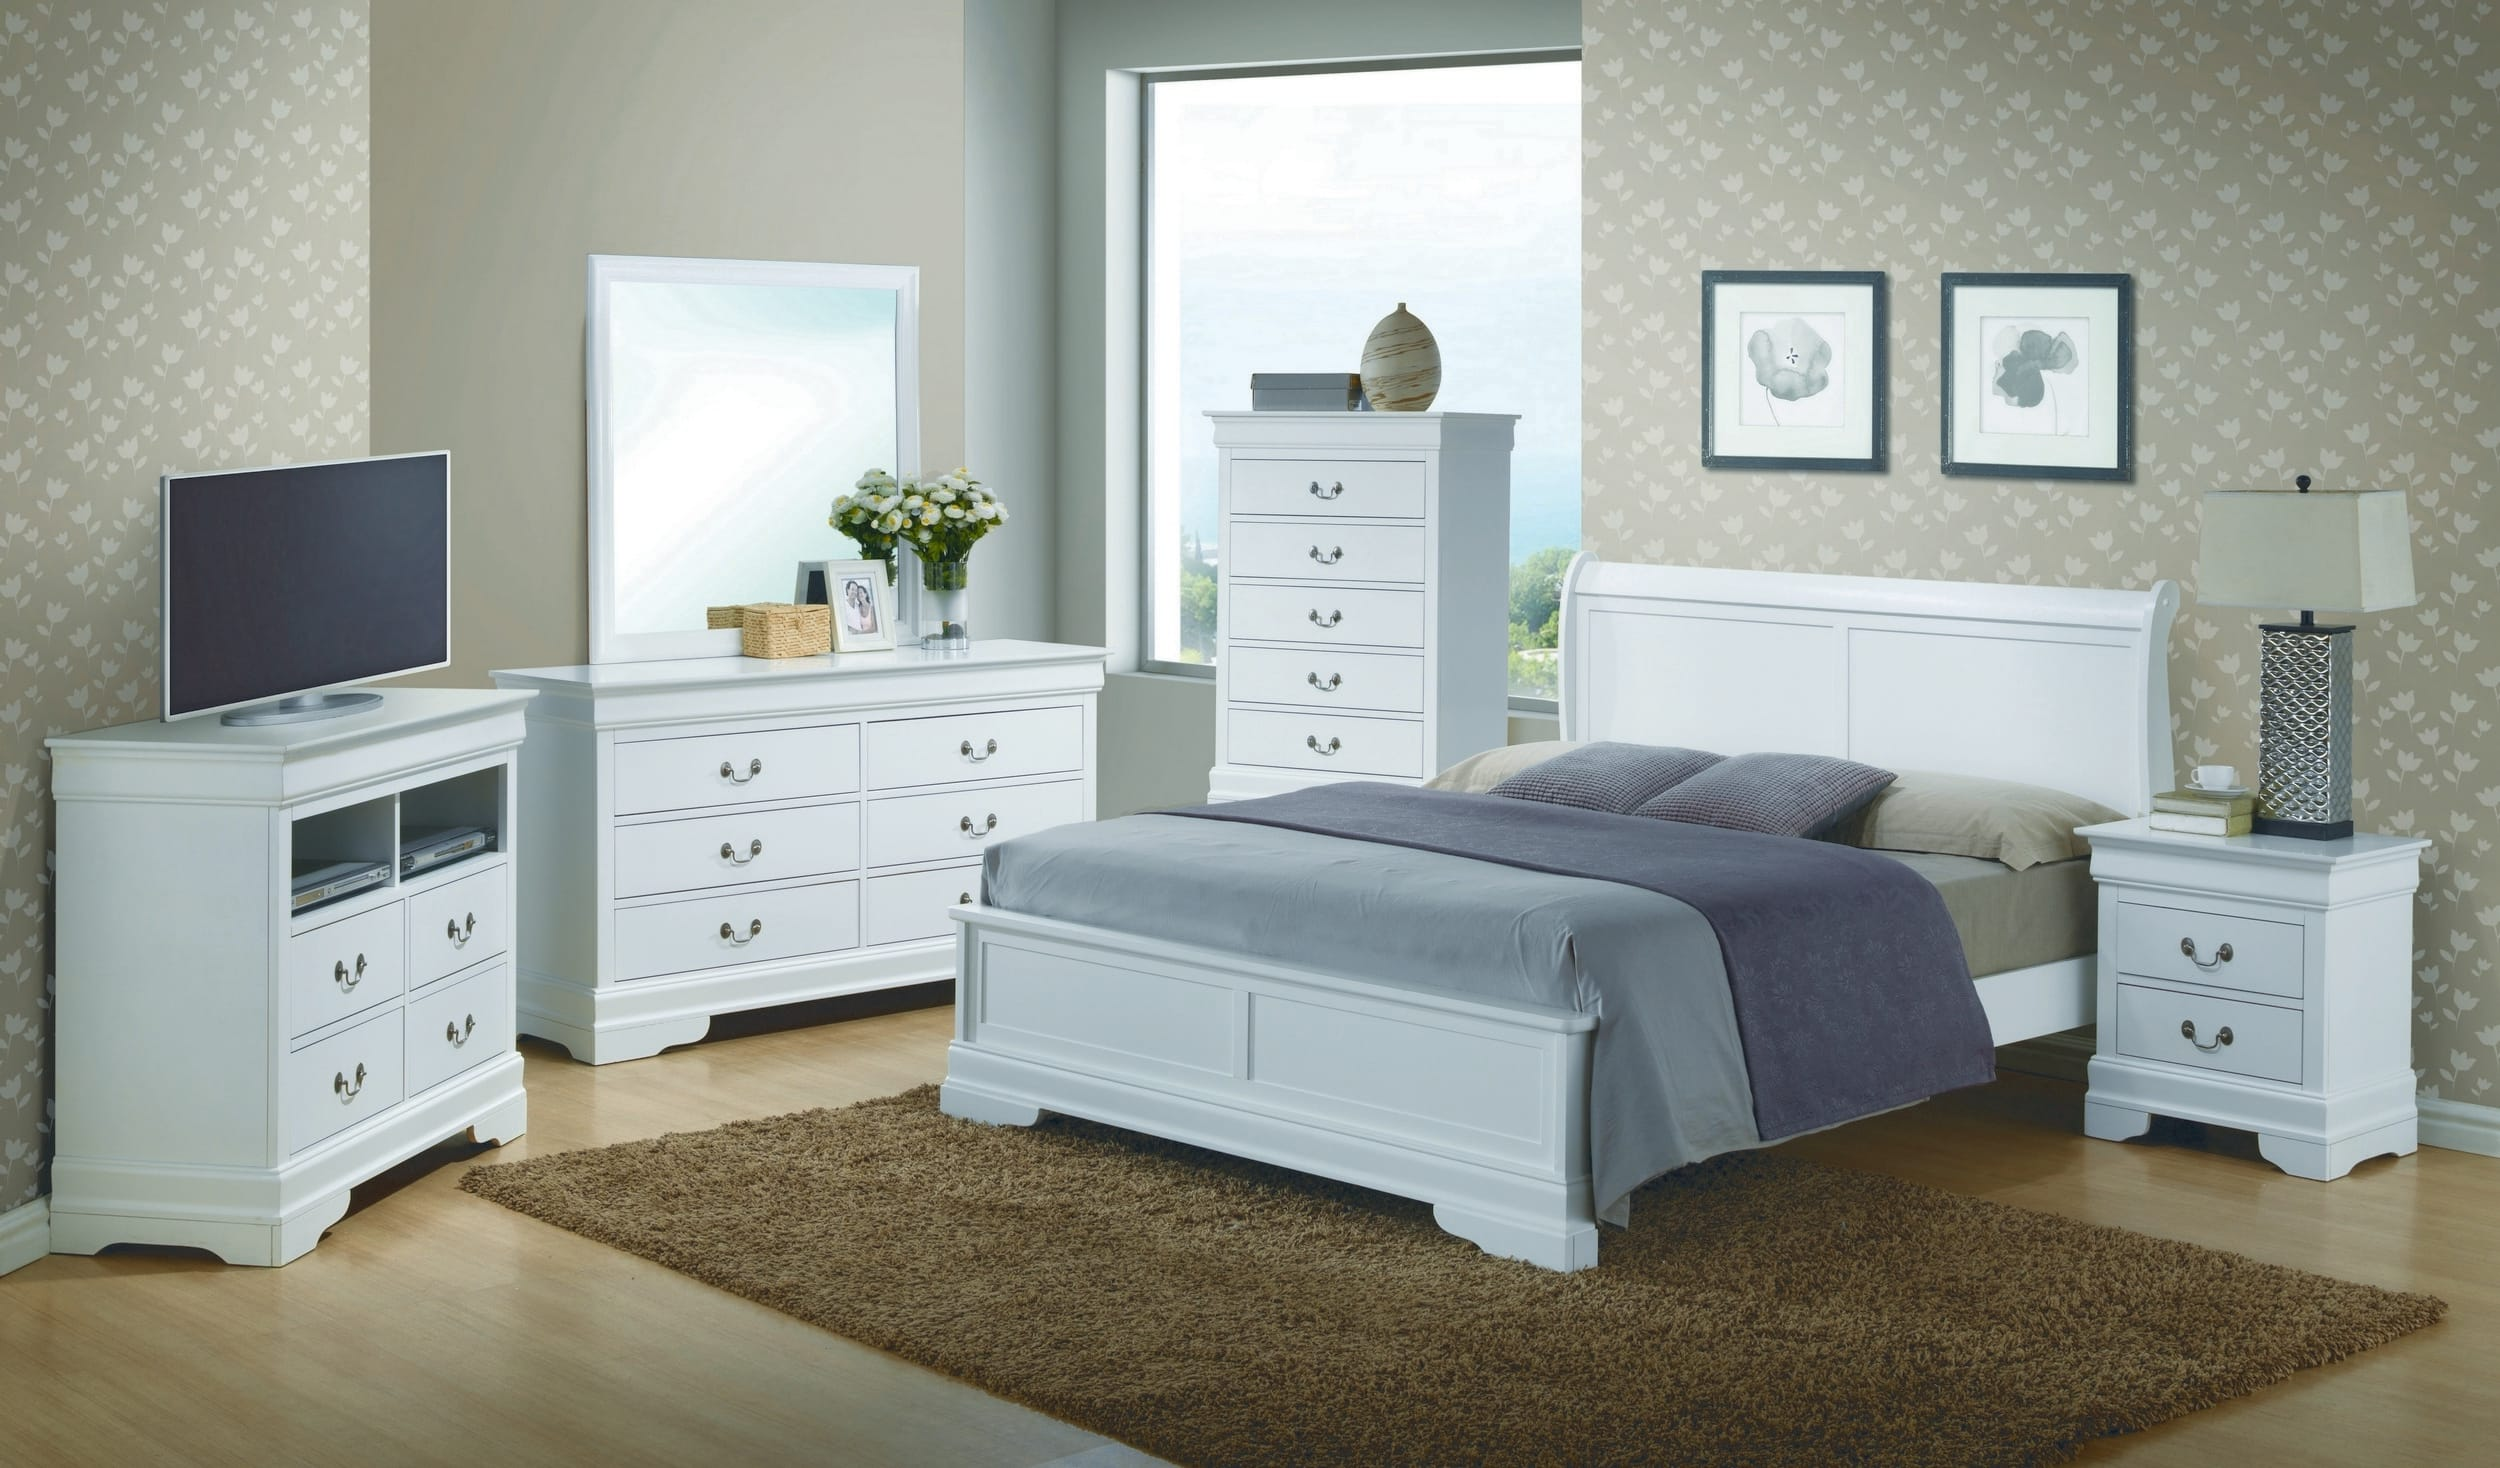 Glory White King 6-Piece Bedroom Set with Sleigh Headboard & Reviews -  Goedekers.com